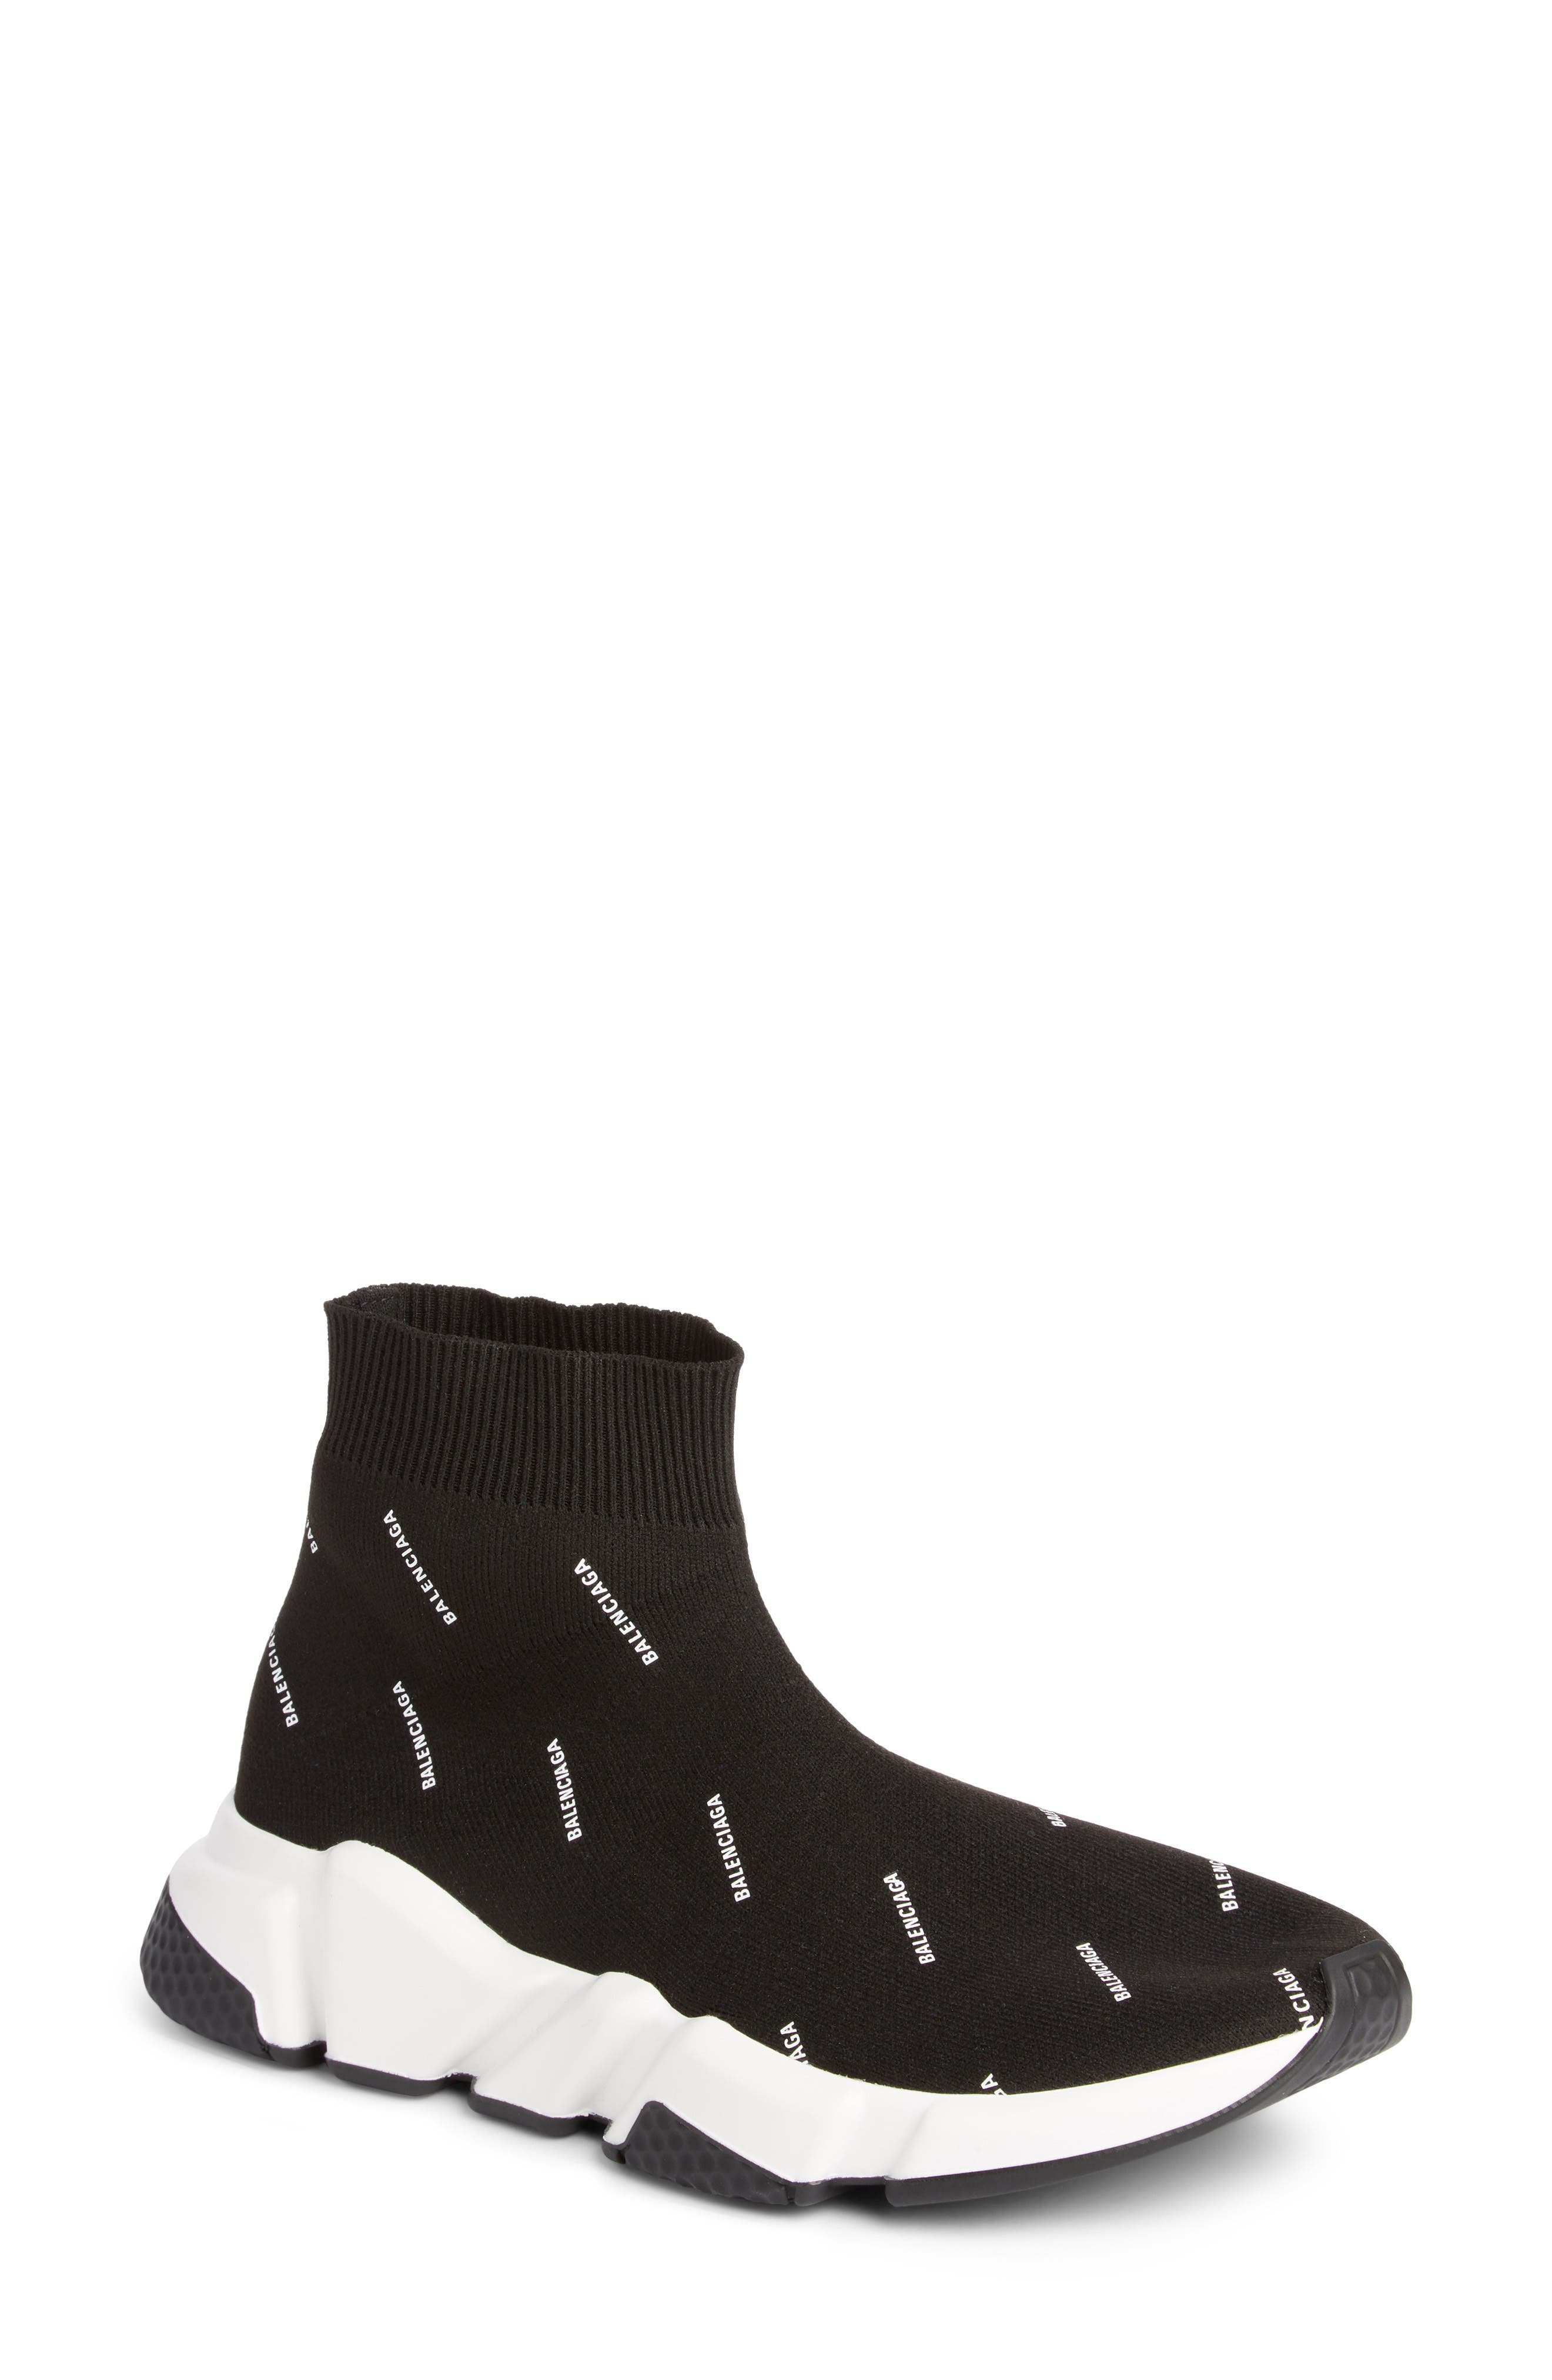 White sock and boot j o